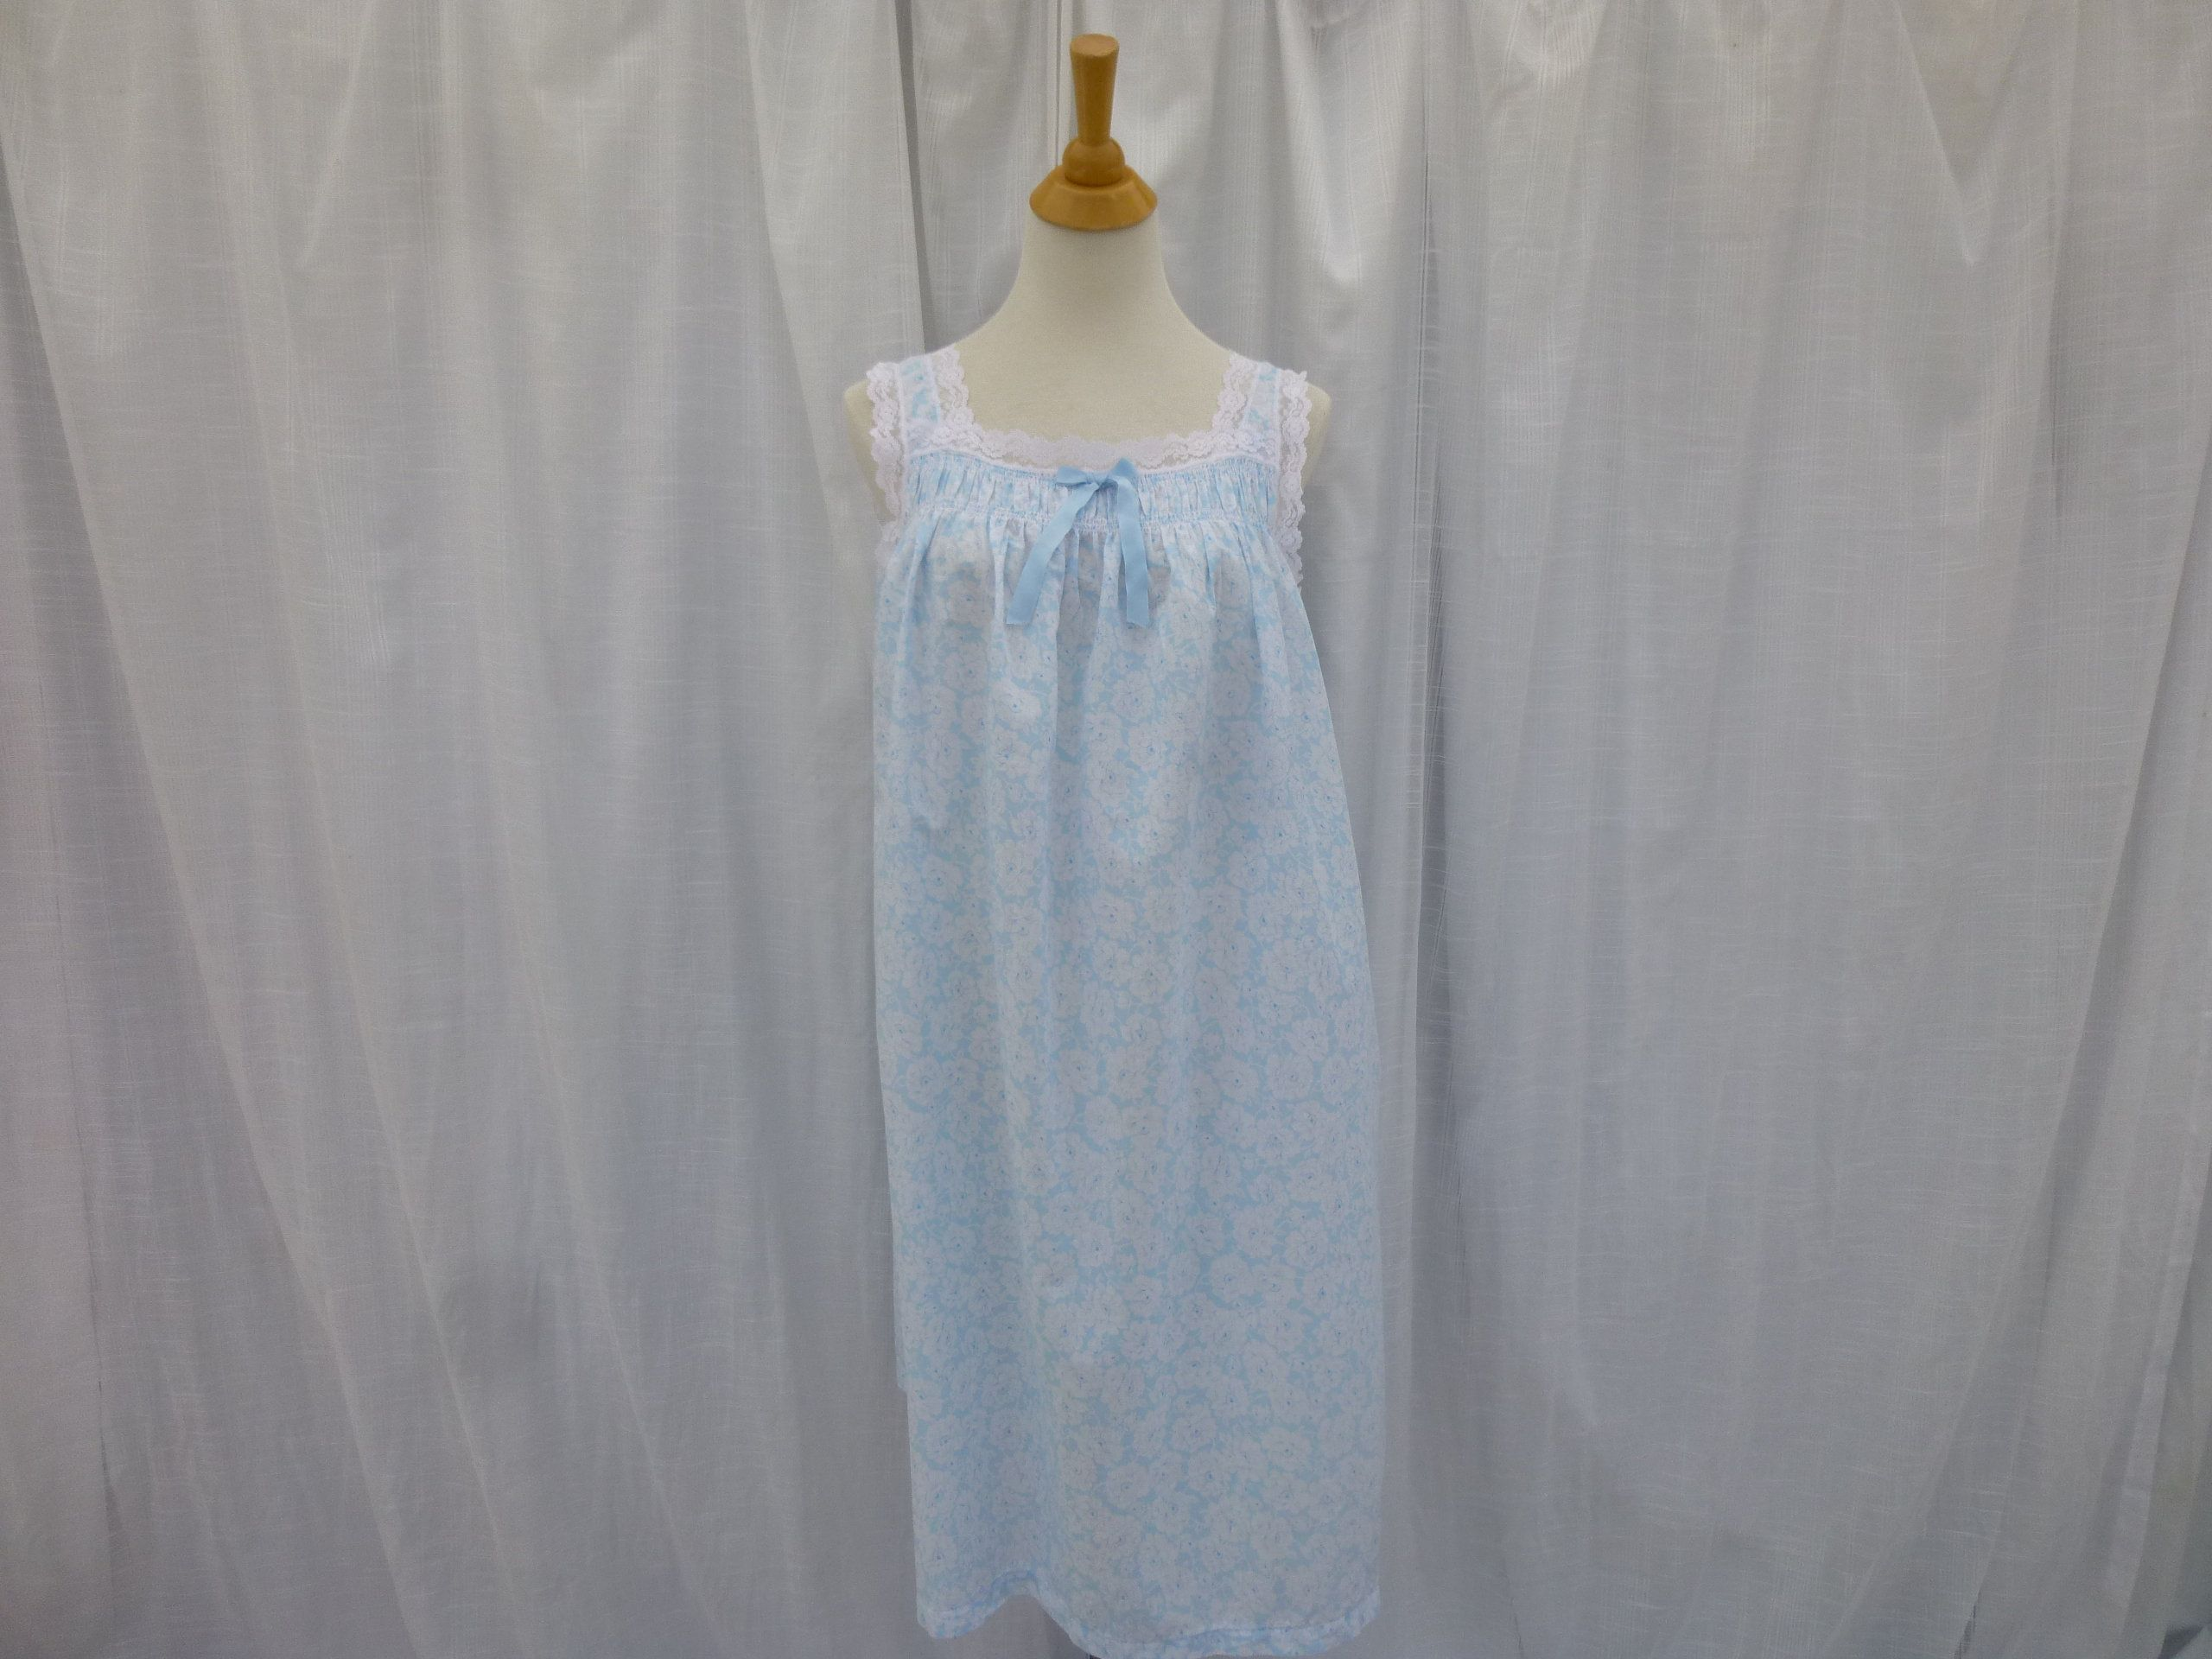 Vintage 60s Schrank Floral Lacy Cotton Nightgown L Light Blue White Rose Flowers Lace Sleeveless Granny Pajamas In 2020 Night Gown Cotton Nightgown Retro Dress Shirts